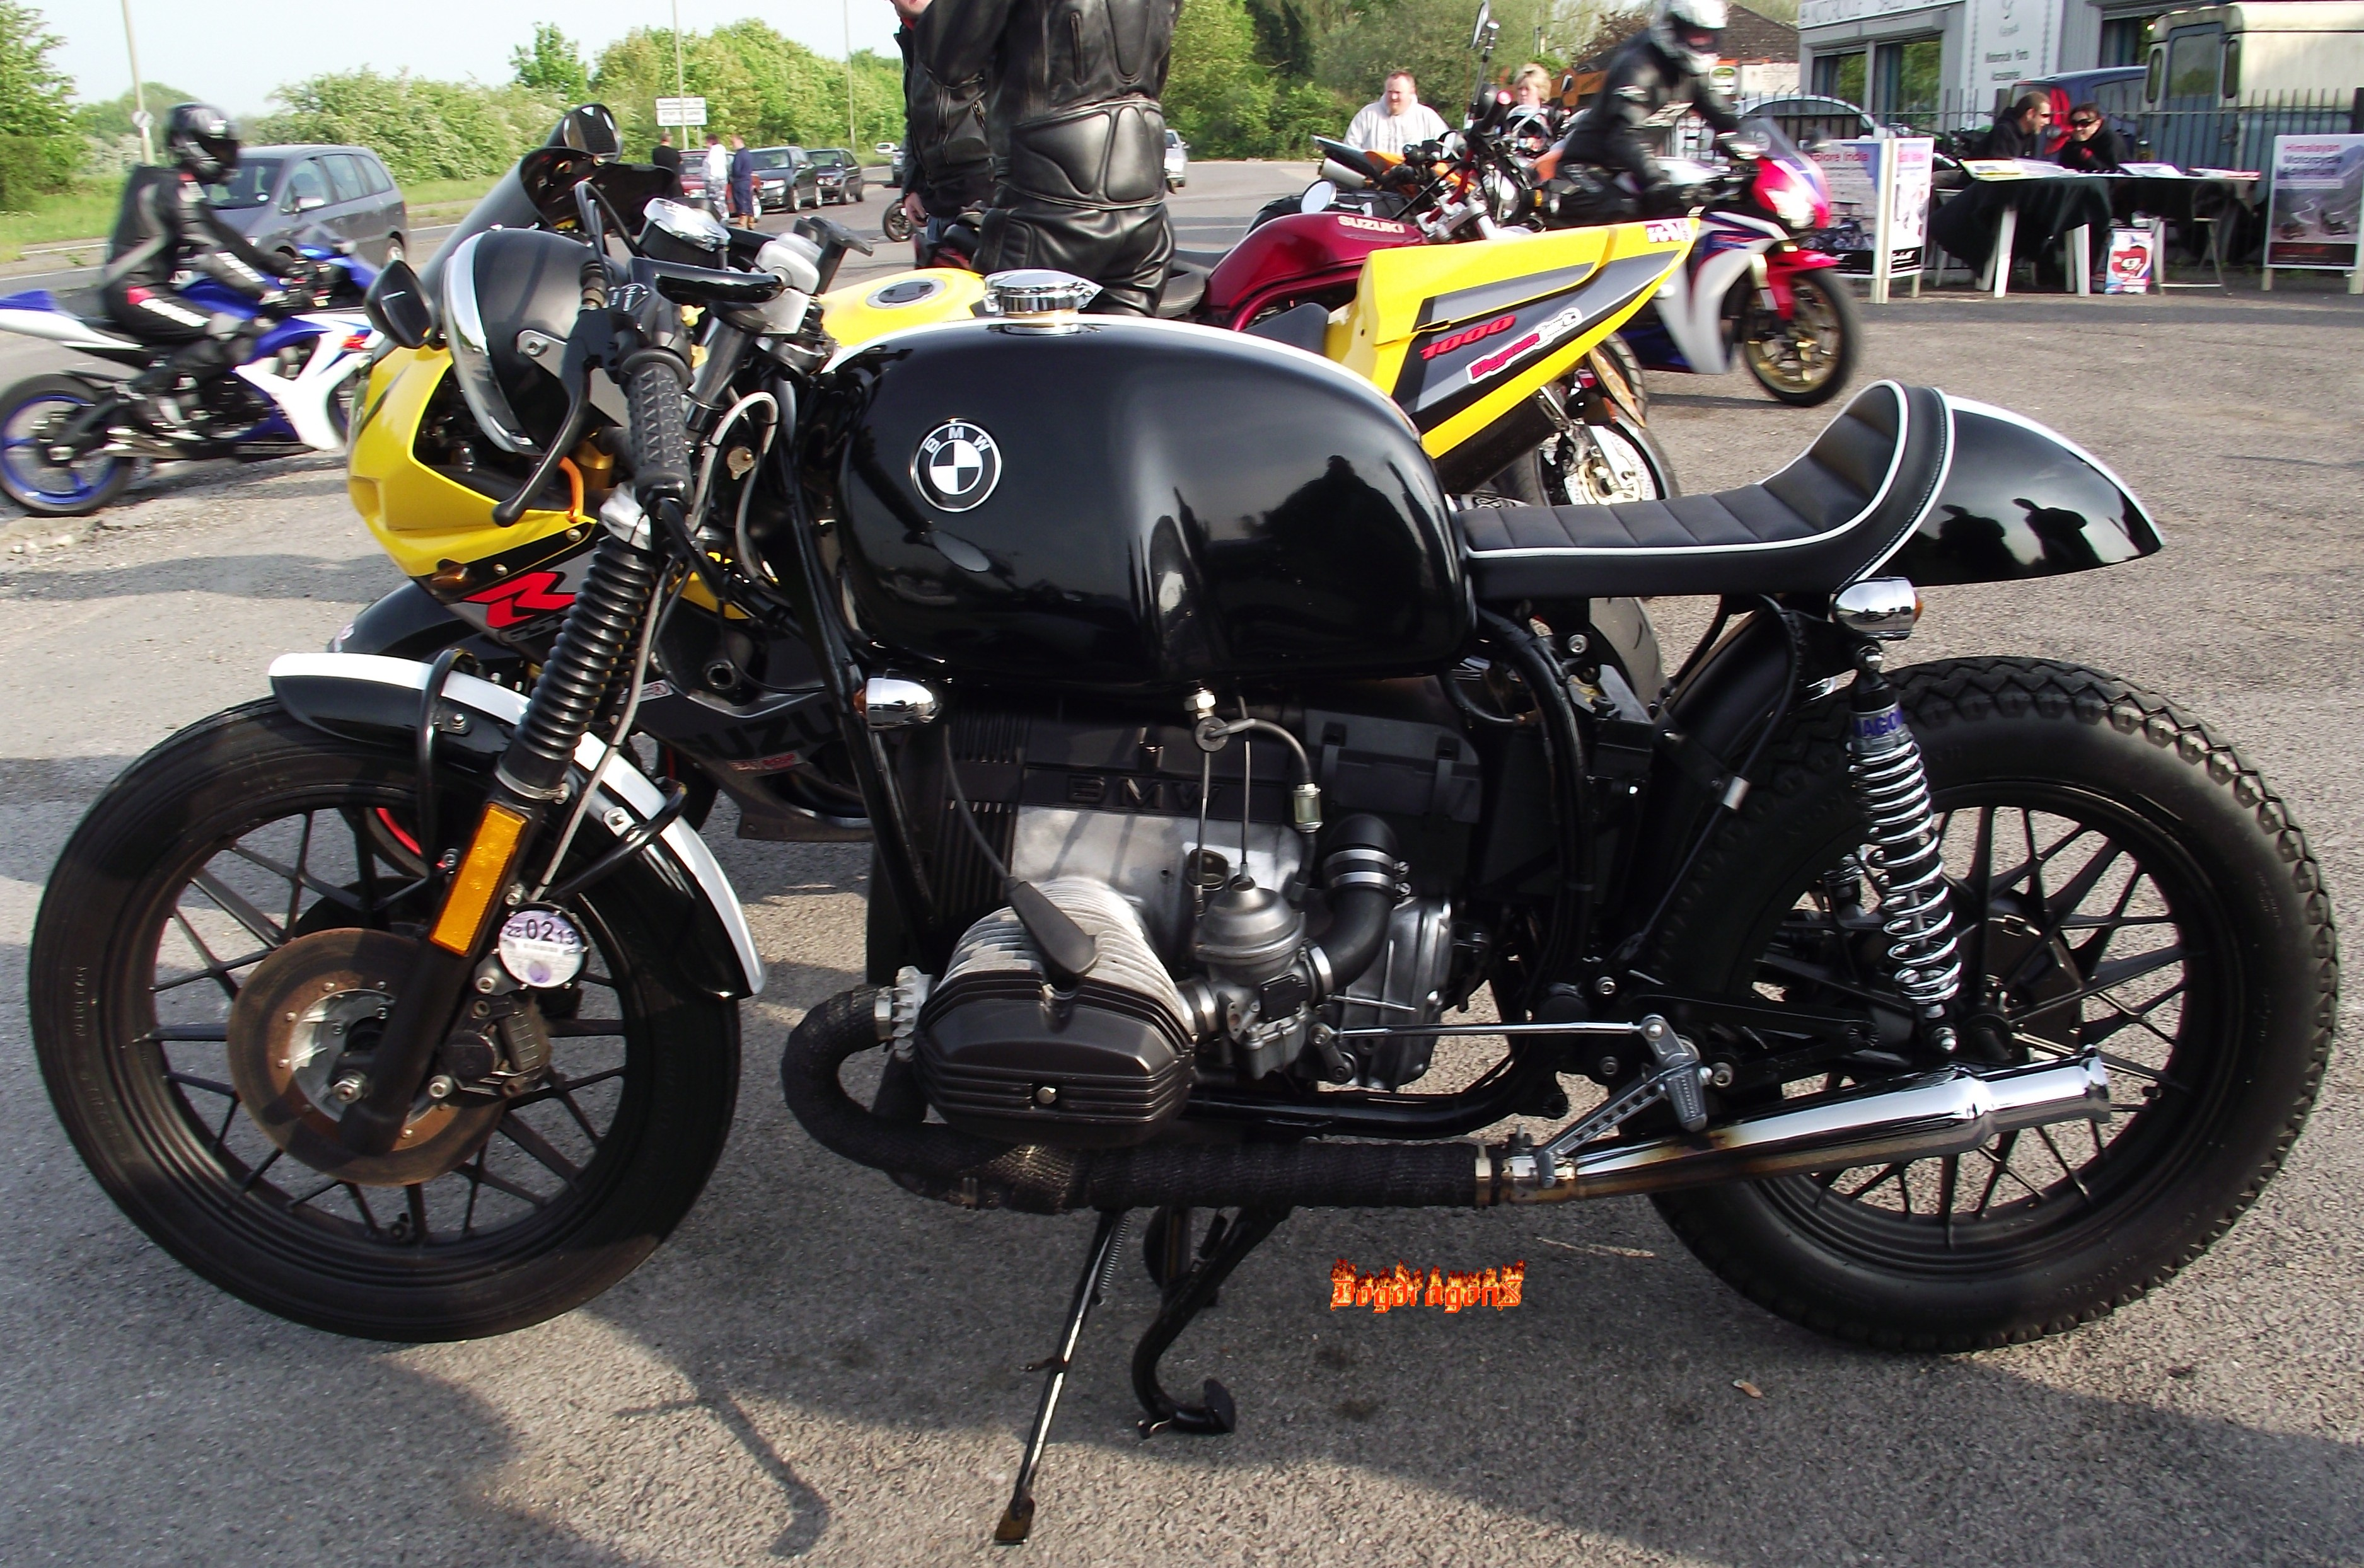 BMW Cafe Racer Not For Sale